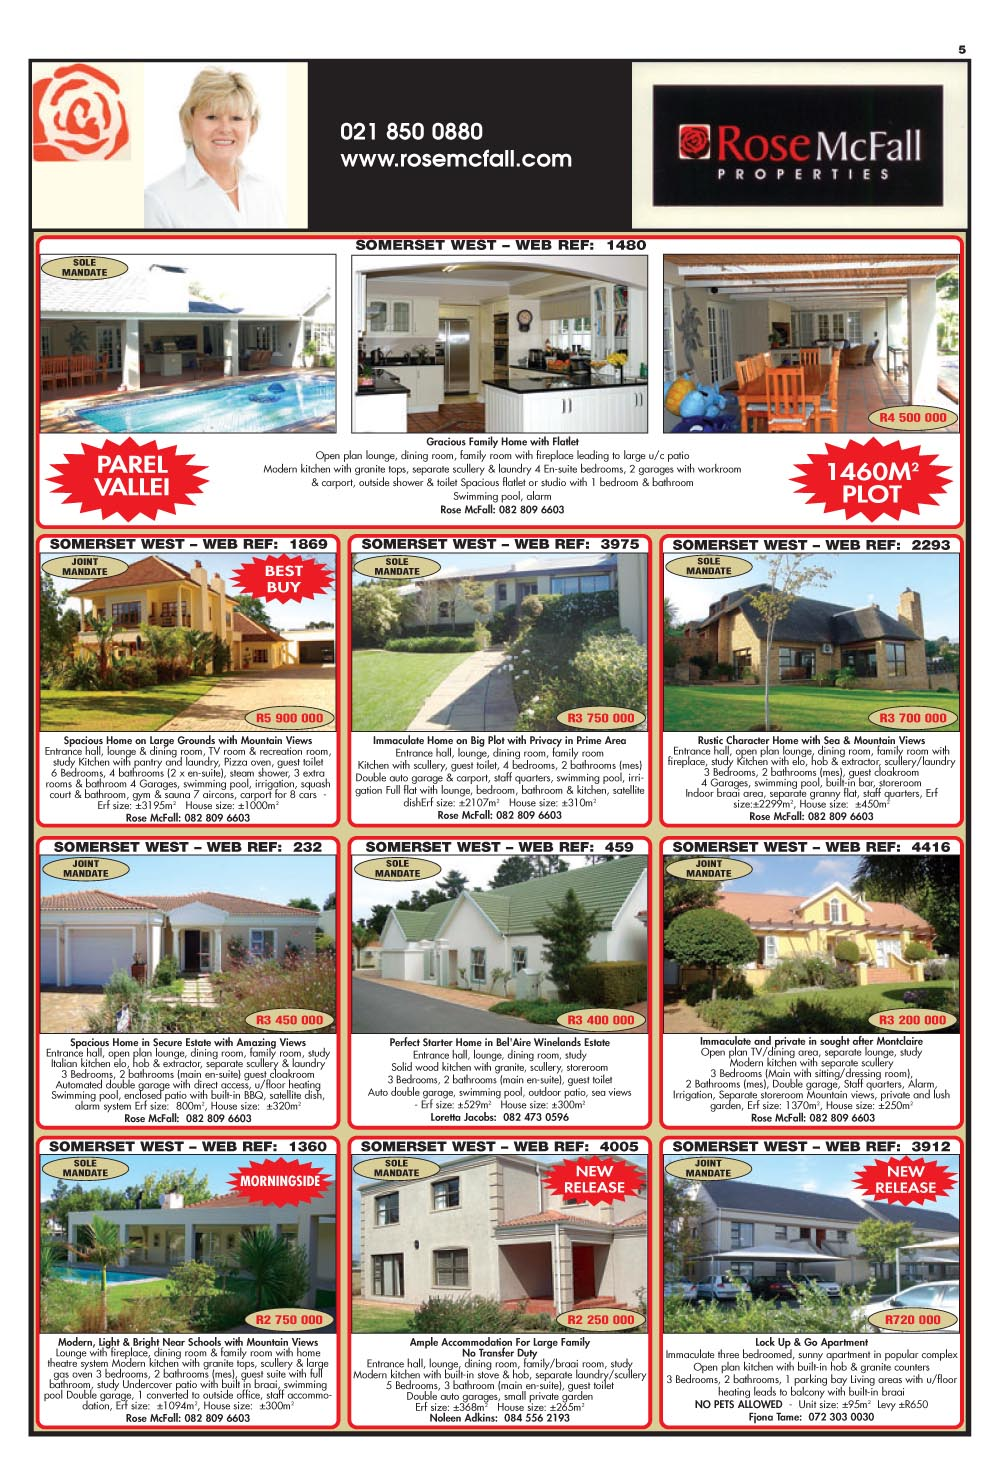 You are browsing images from the article: Property Selection -  January 25th 2012